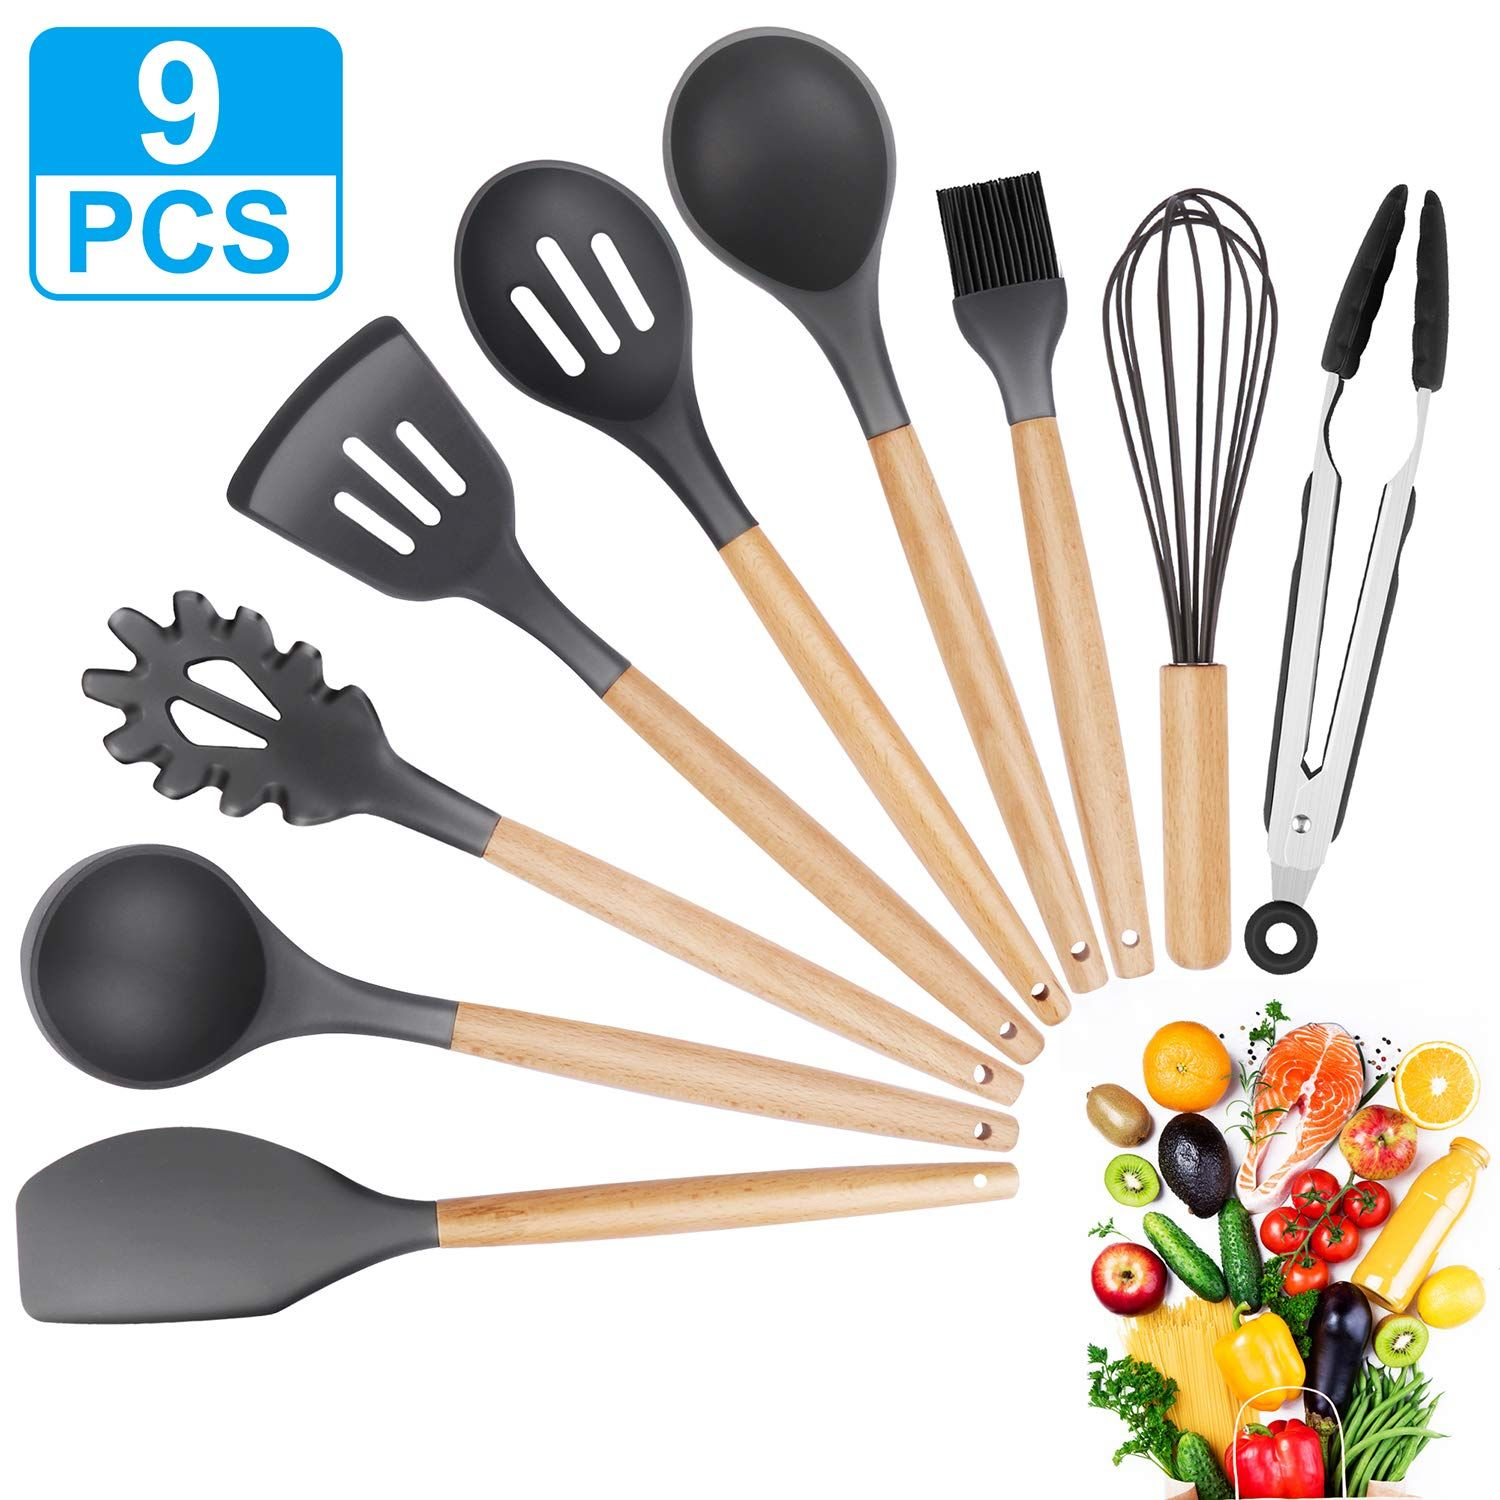 Kitchen Utensil Set 9pcs Silicone Cooking Tools Beech Wooden